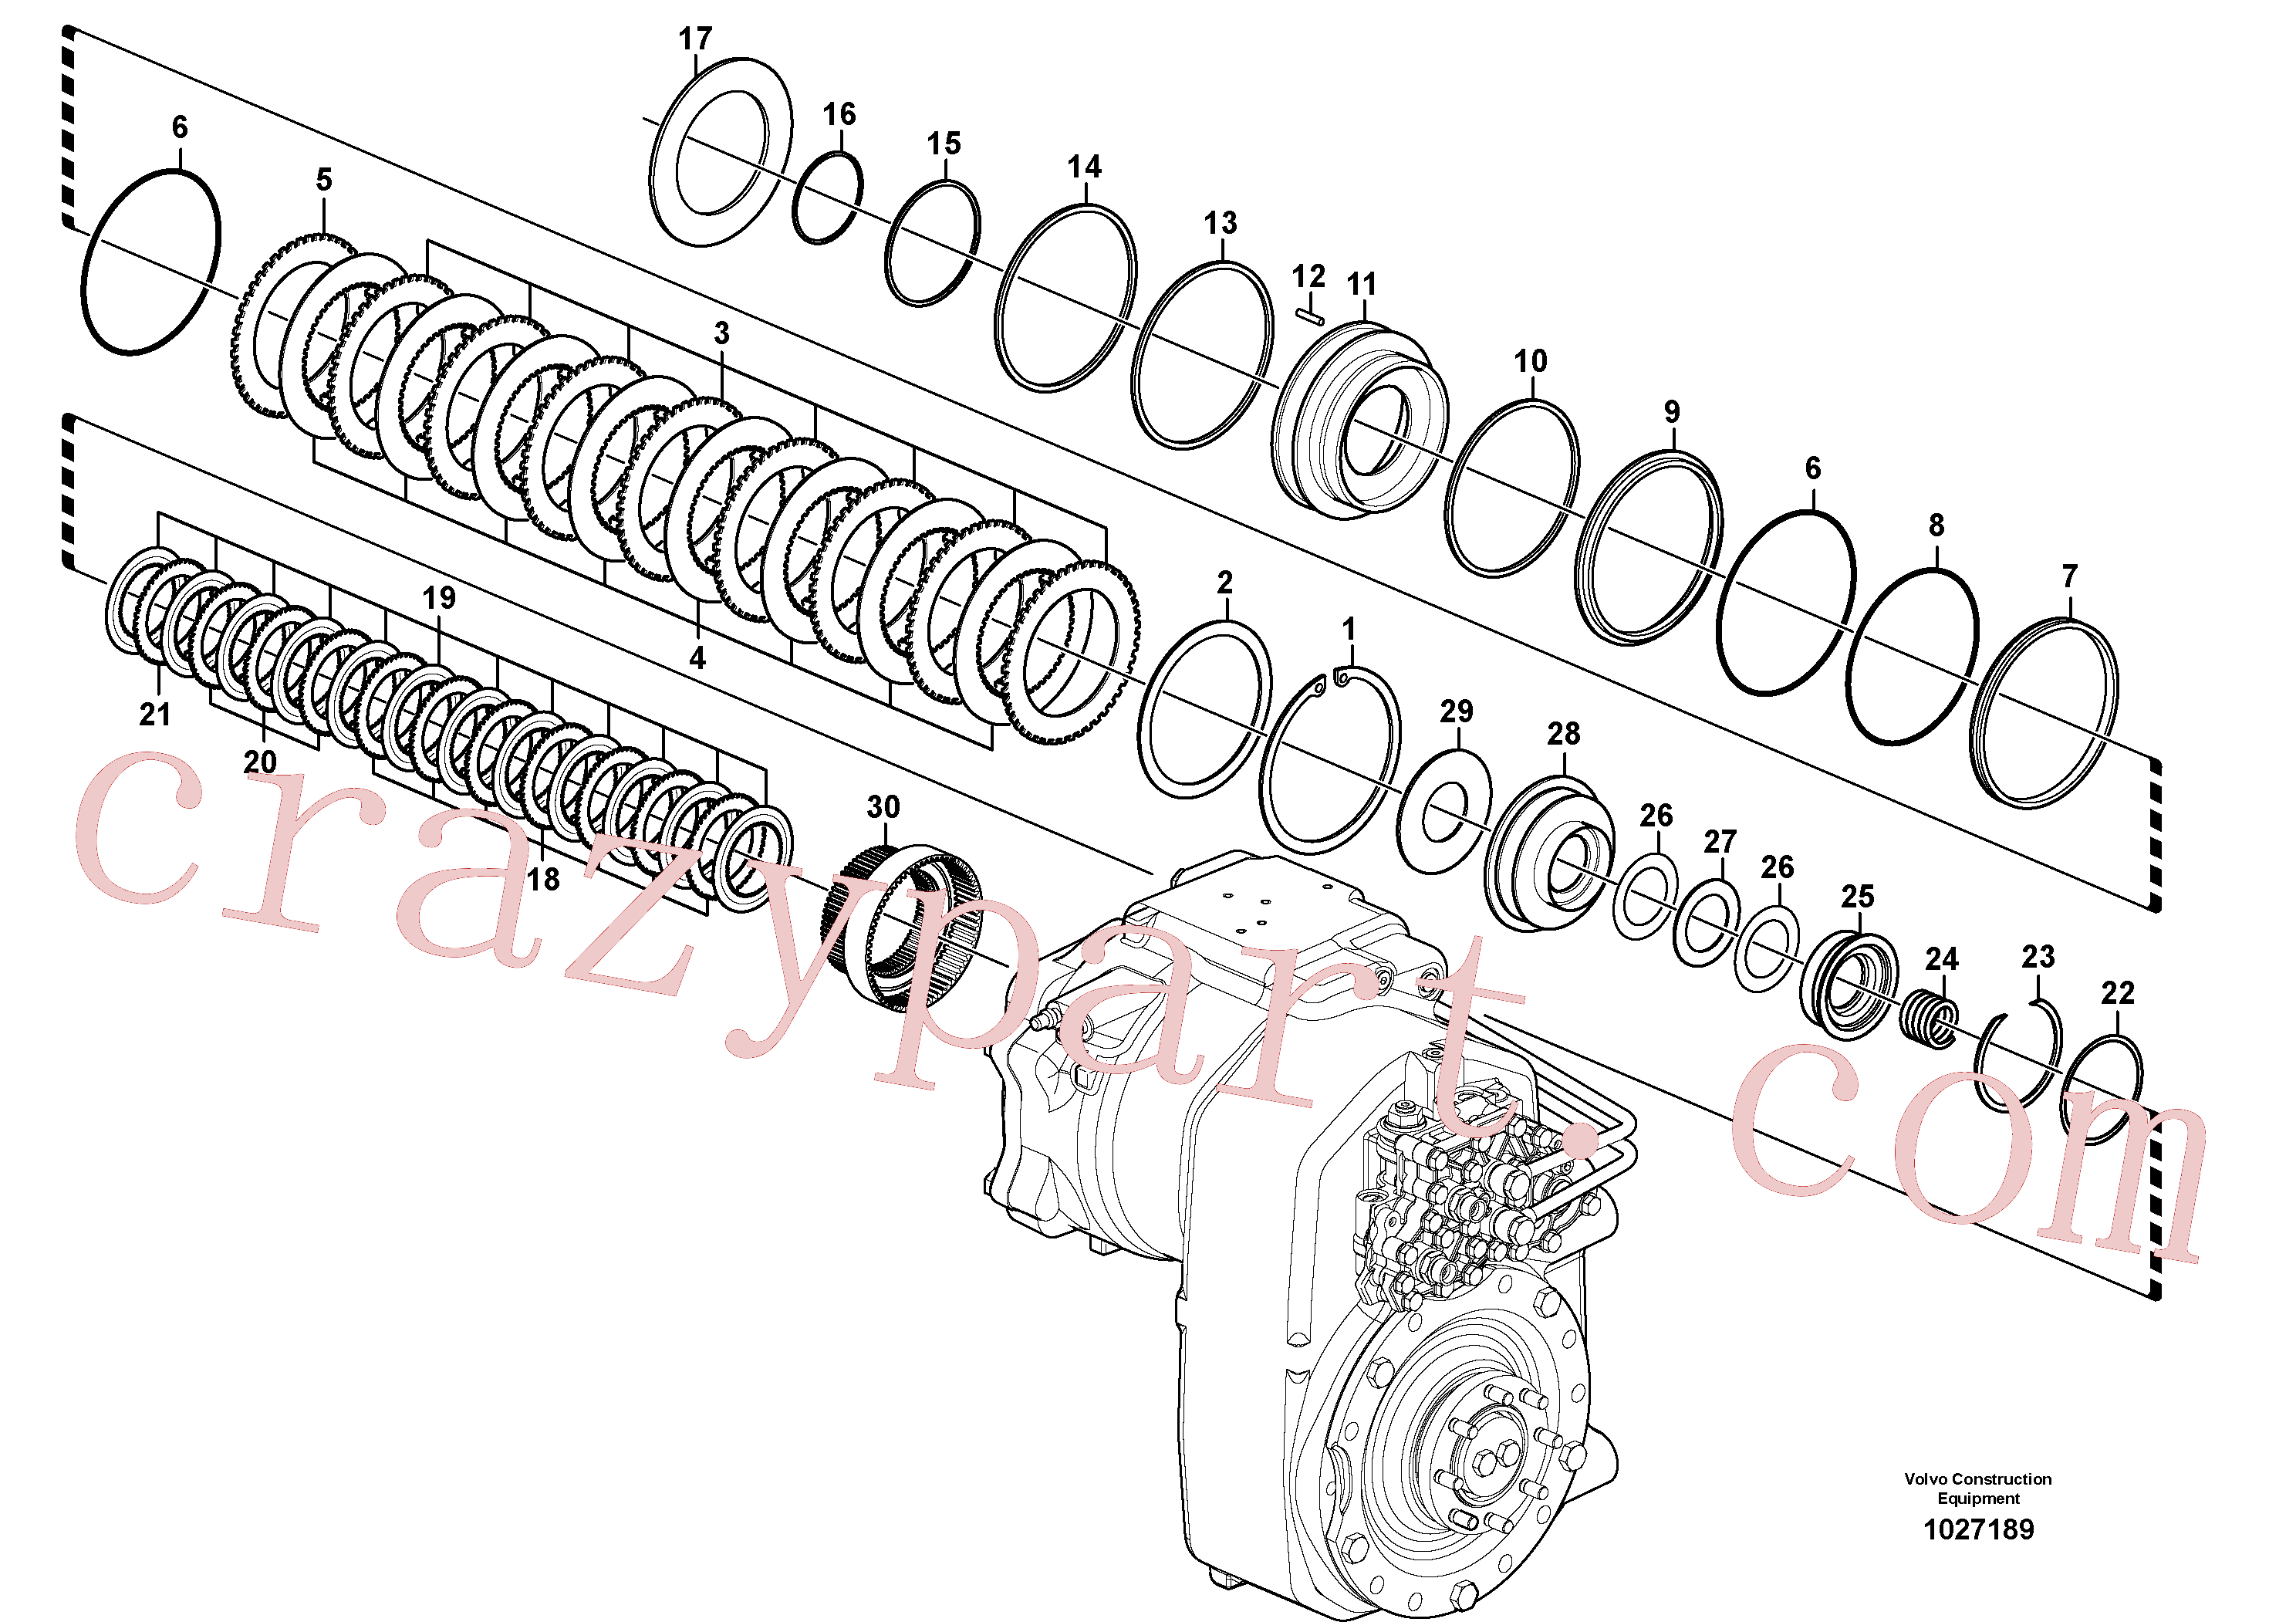 SA8220-11910 for Volvo Transfer case, hydraulic coupling(1027189 assembly)